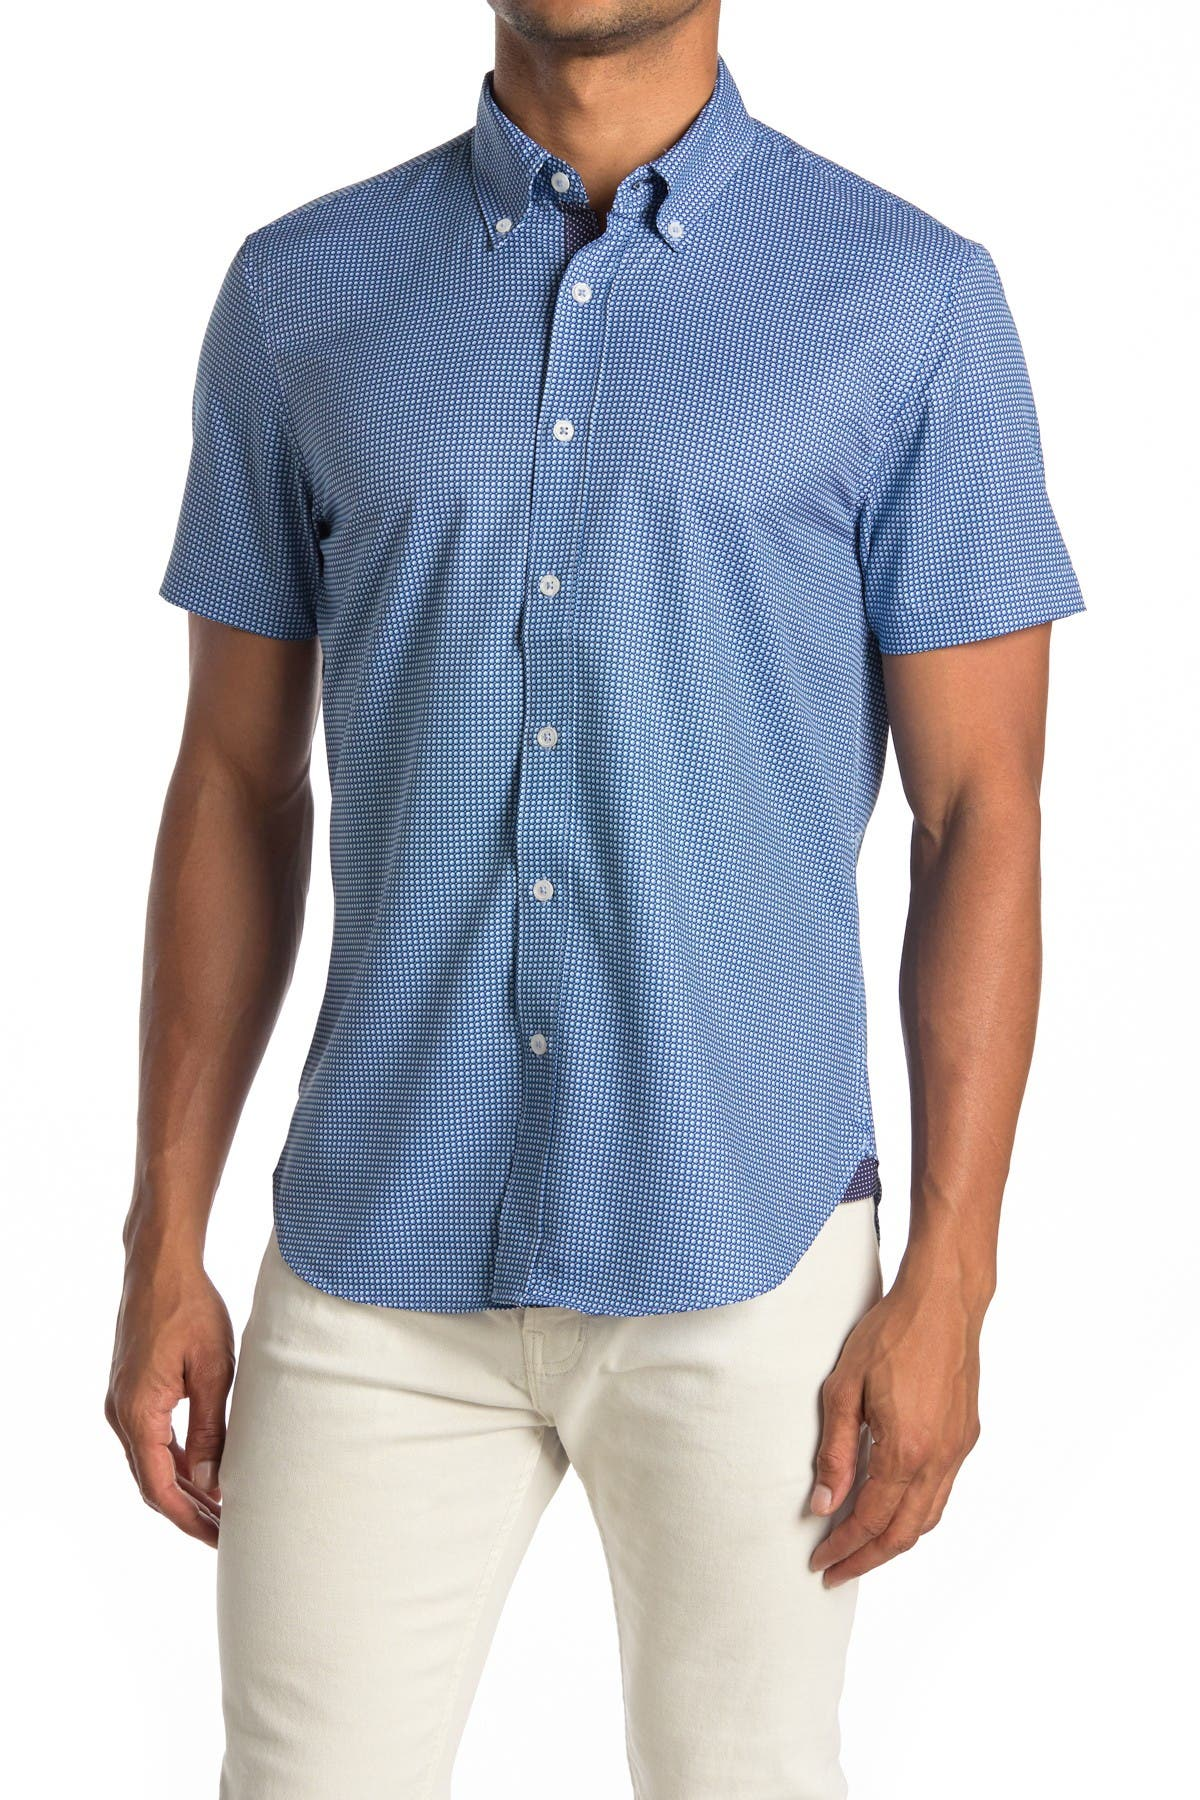 Image of CONSTRUCT Geo Print Short Sleeve Slim Fit Four-Way Stretch Shirt